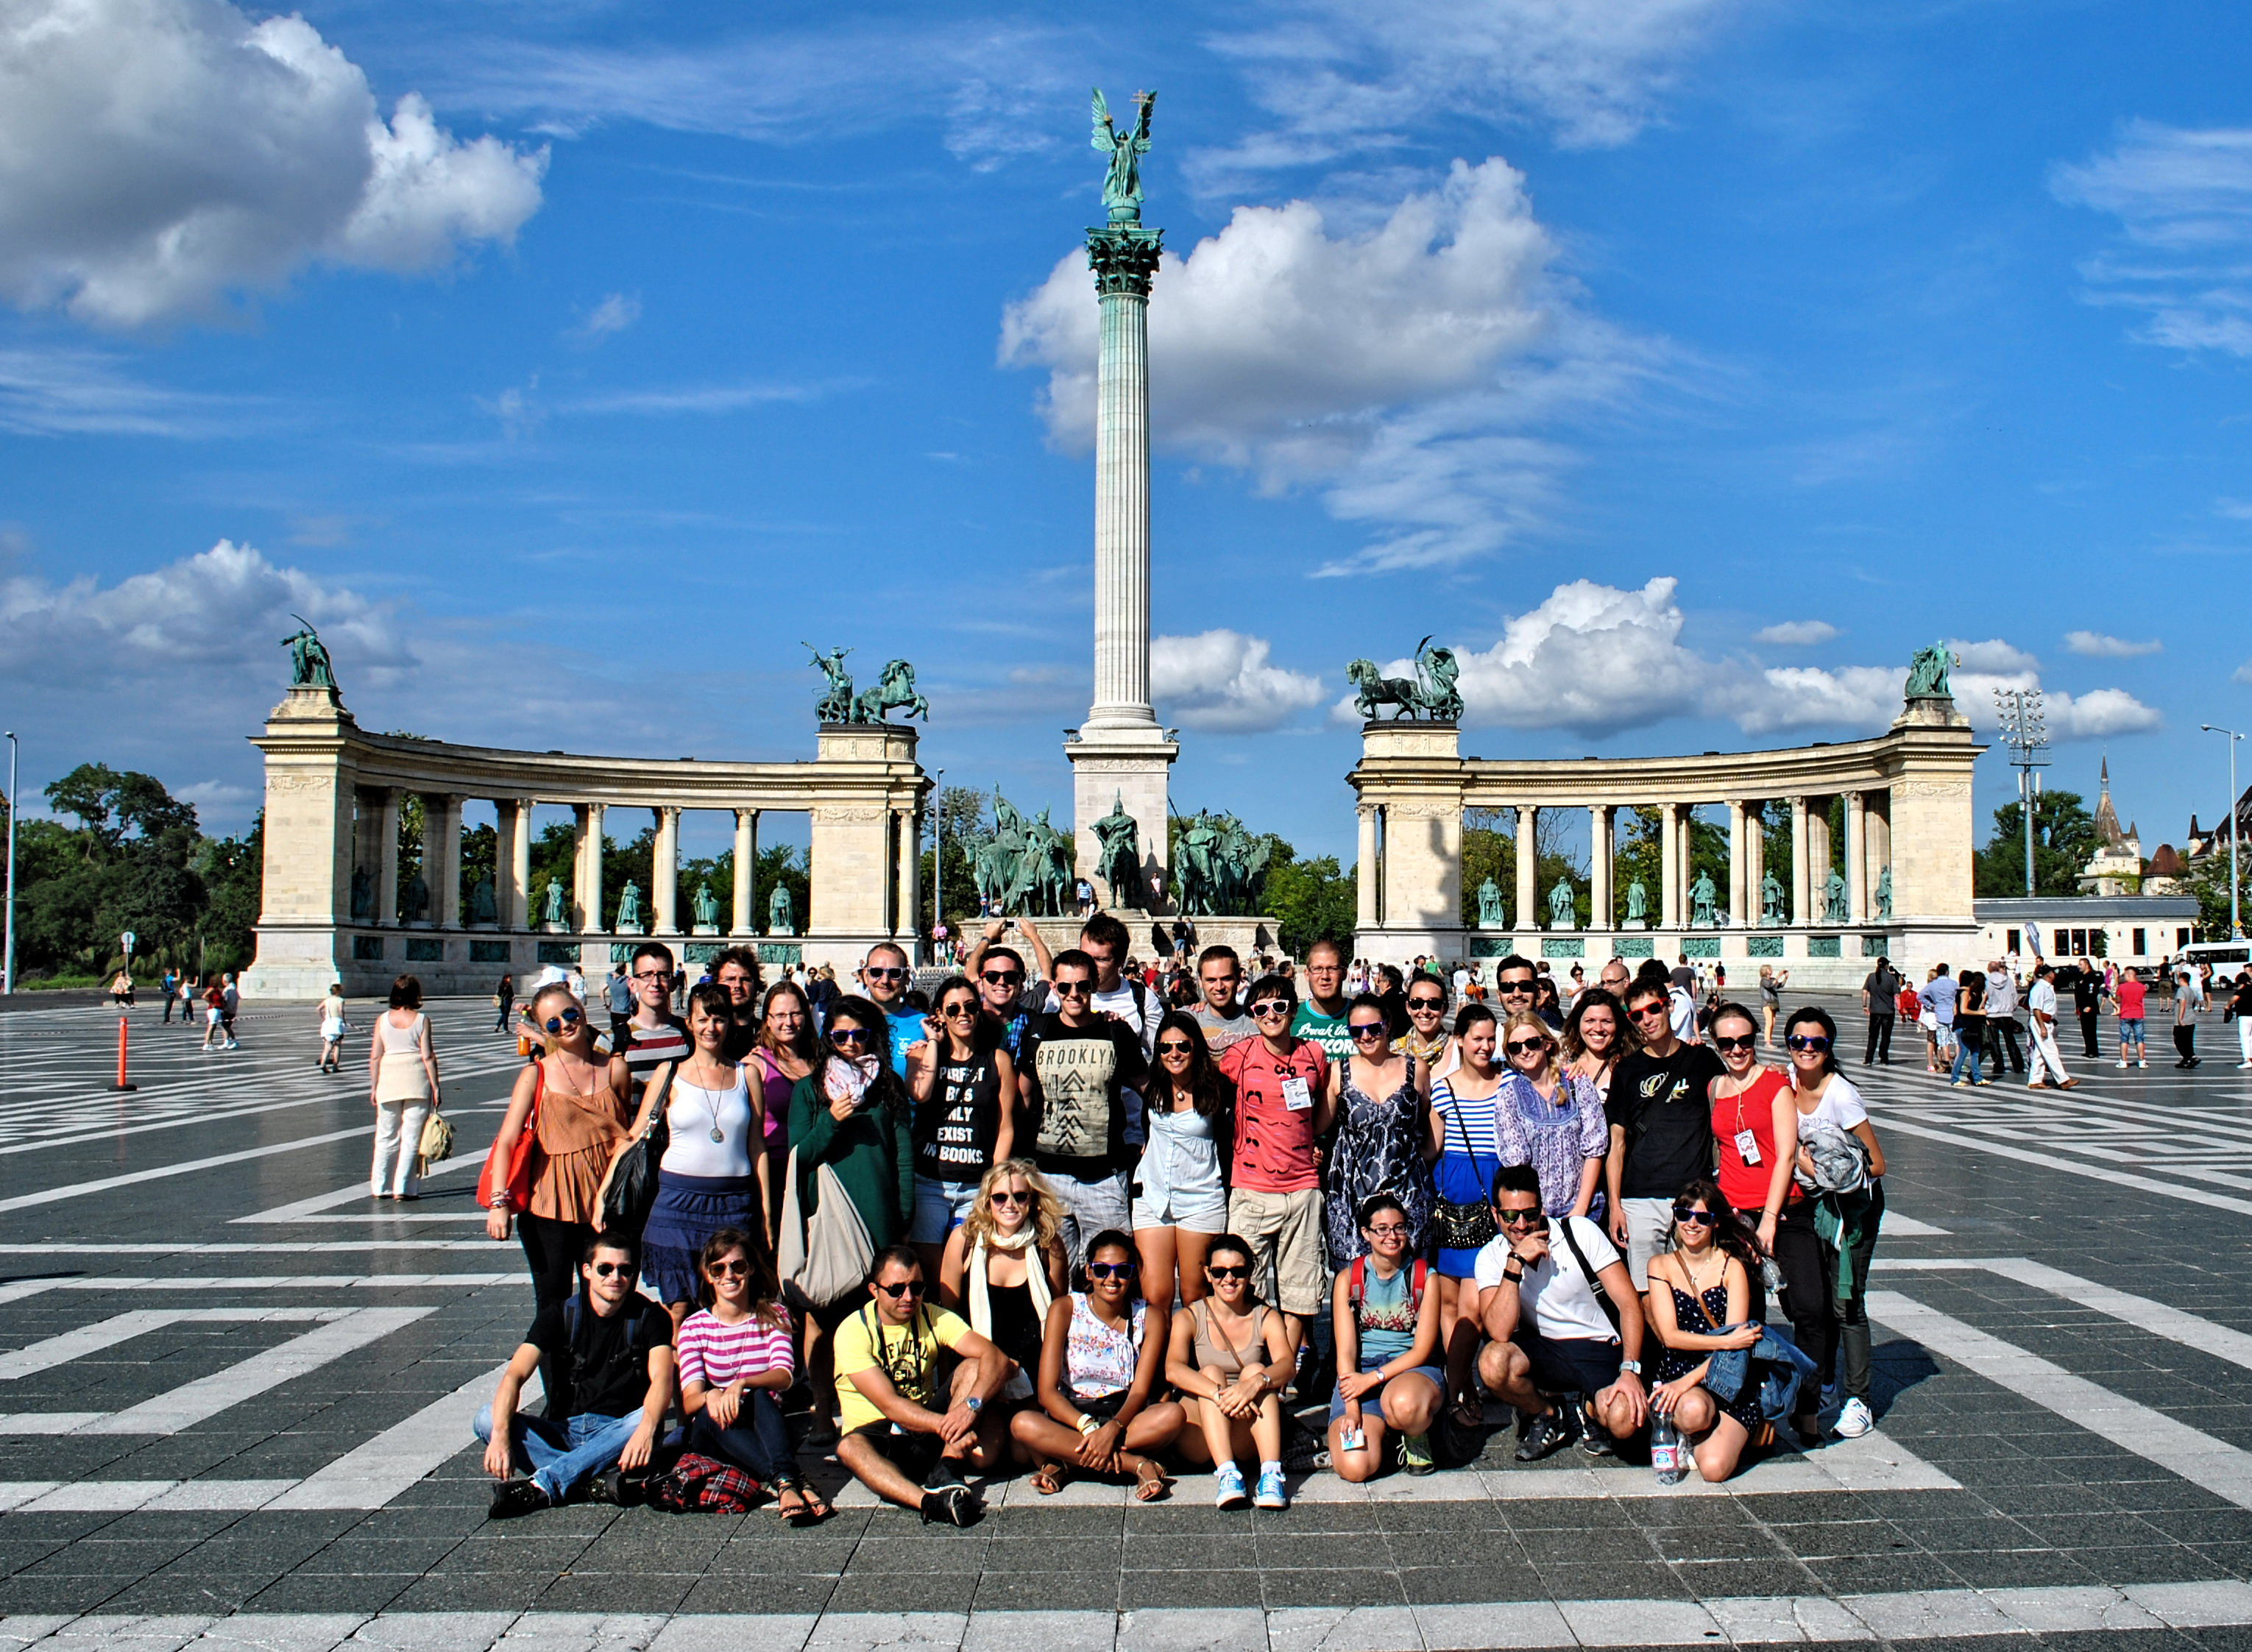 SU Story of the Week: SPAice Up Your Life With Hungarian Culture